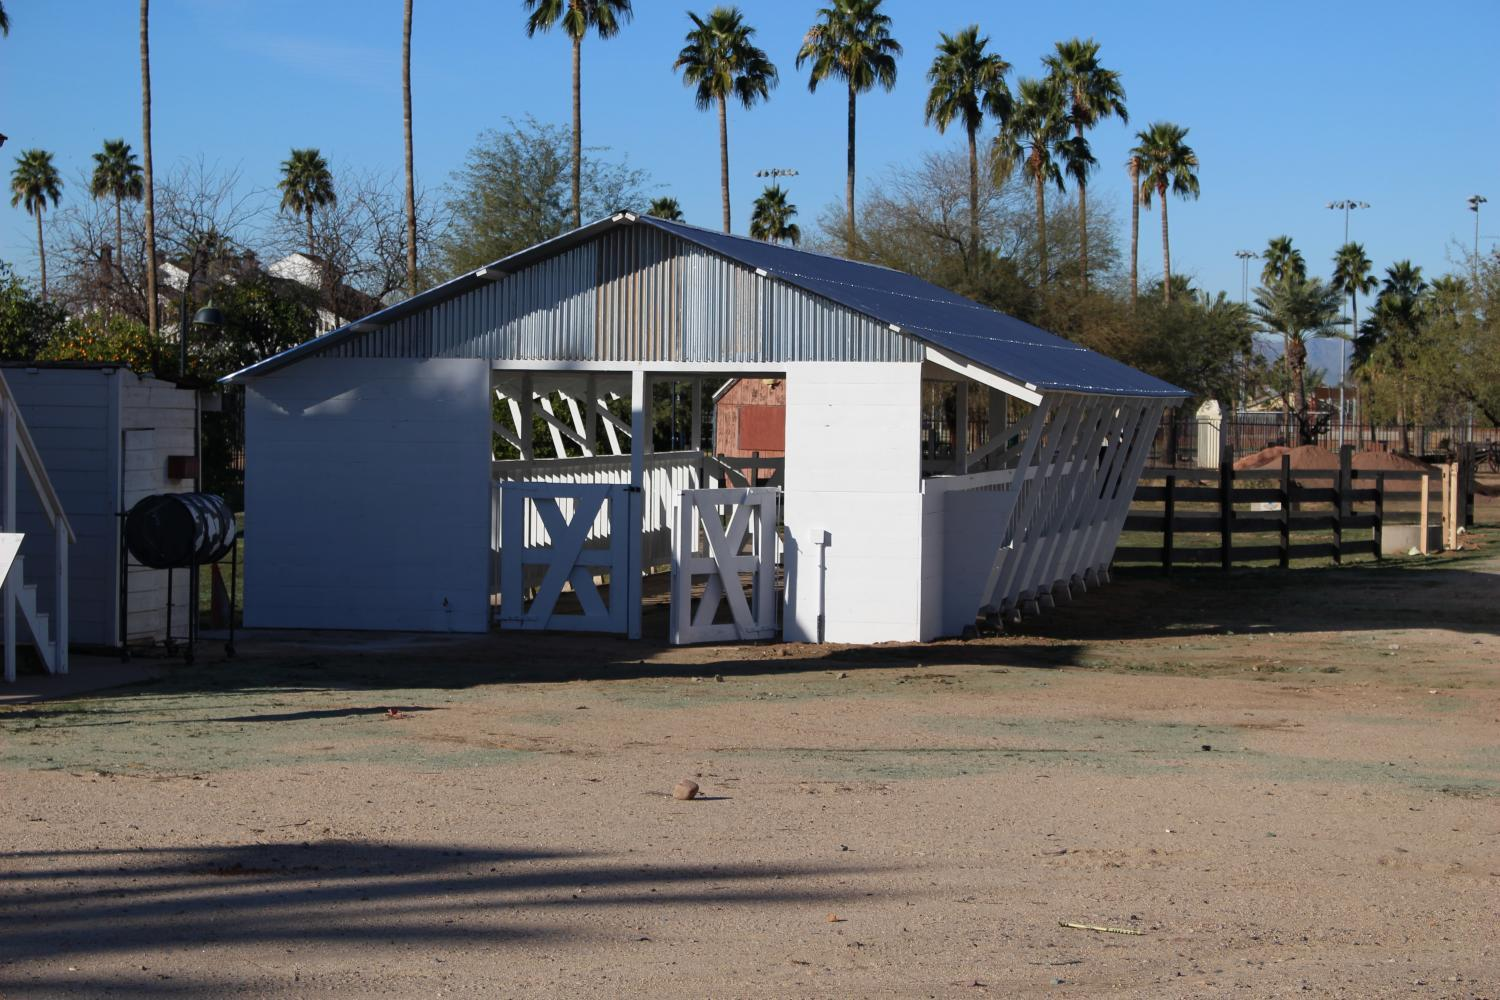 The dairy barn at Sahuaro Ranch Park in Glendale.